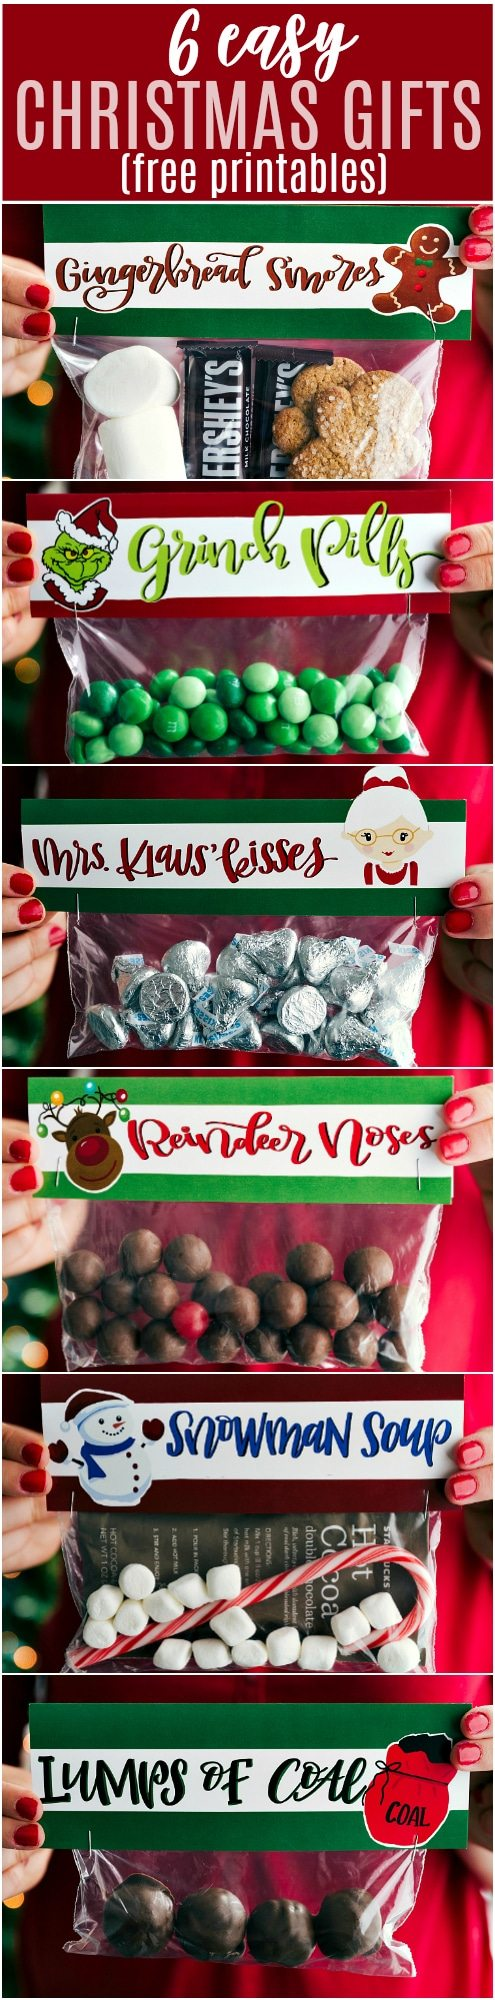 EASY CHRISTMAS GIFTS AND FREE PRINTABLES | 6 of the easiest Christmas gifts ever! These candies/treats are put in a snack-size ziplock bag and you can staple on the FREE printable bag toppers! chelseasmessyapron.com